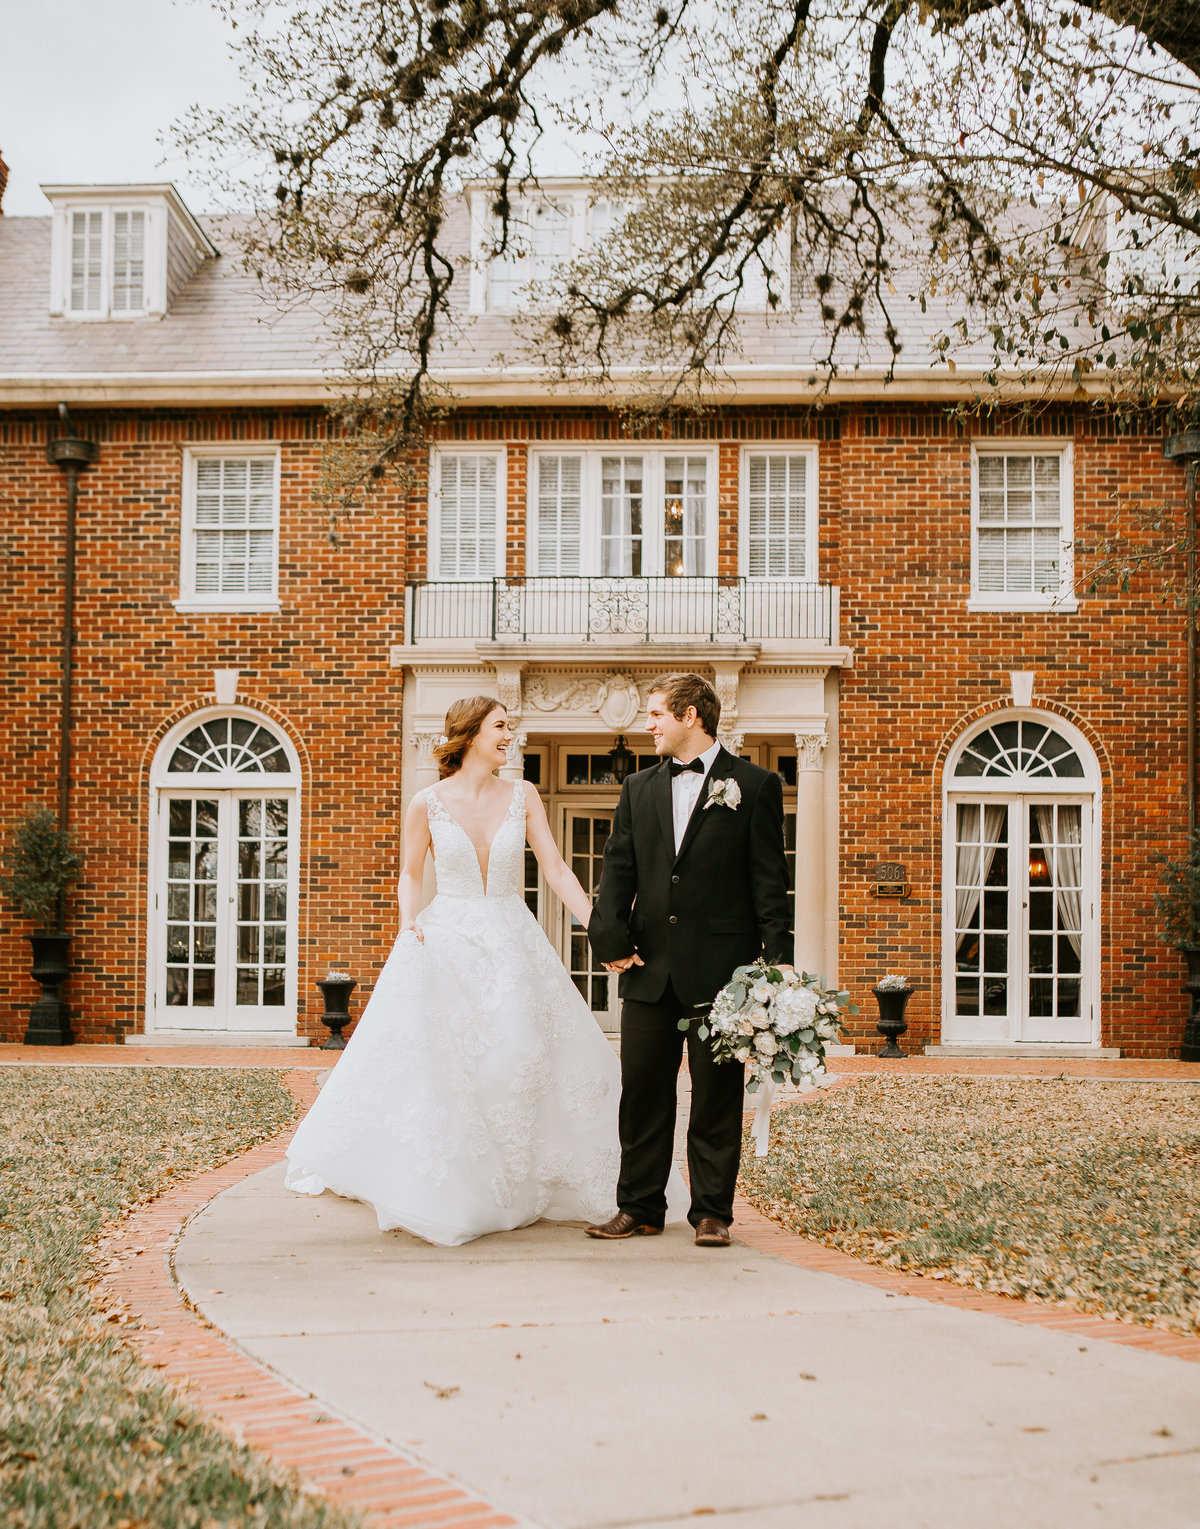 LynsieRaePhotography_2019 Styled Shoot_College Station-8